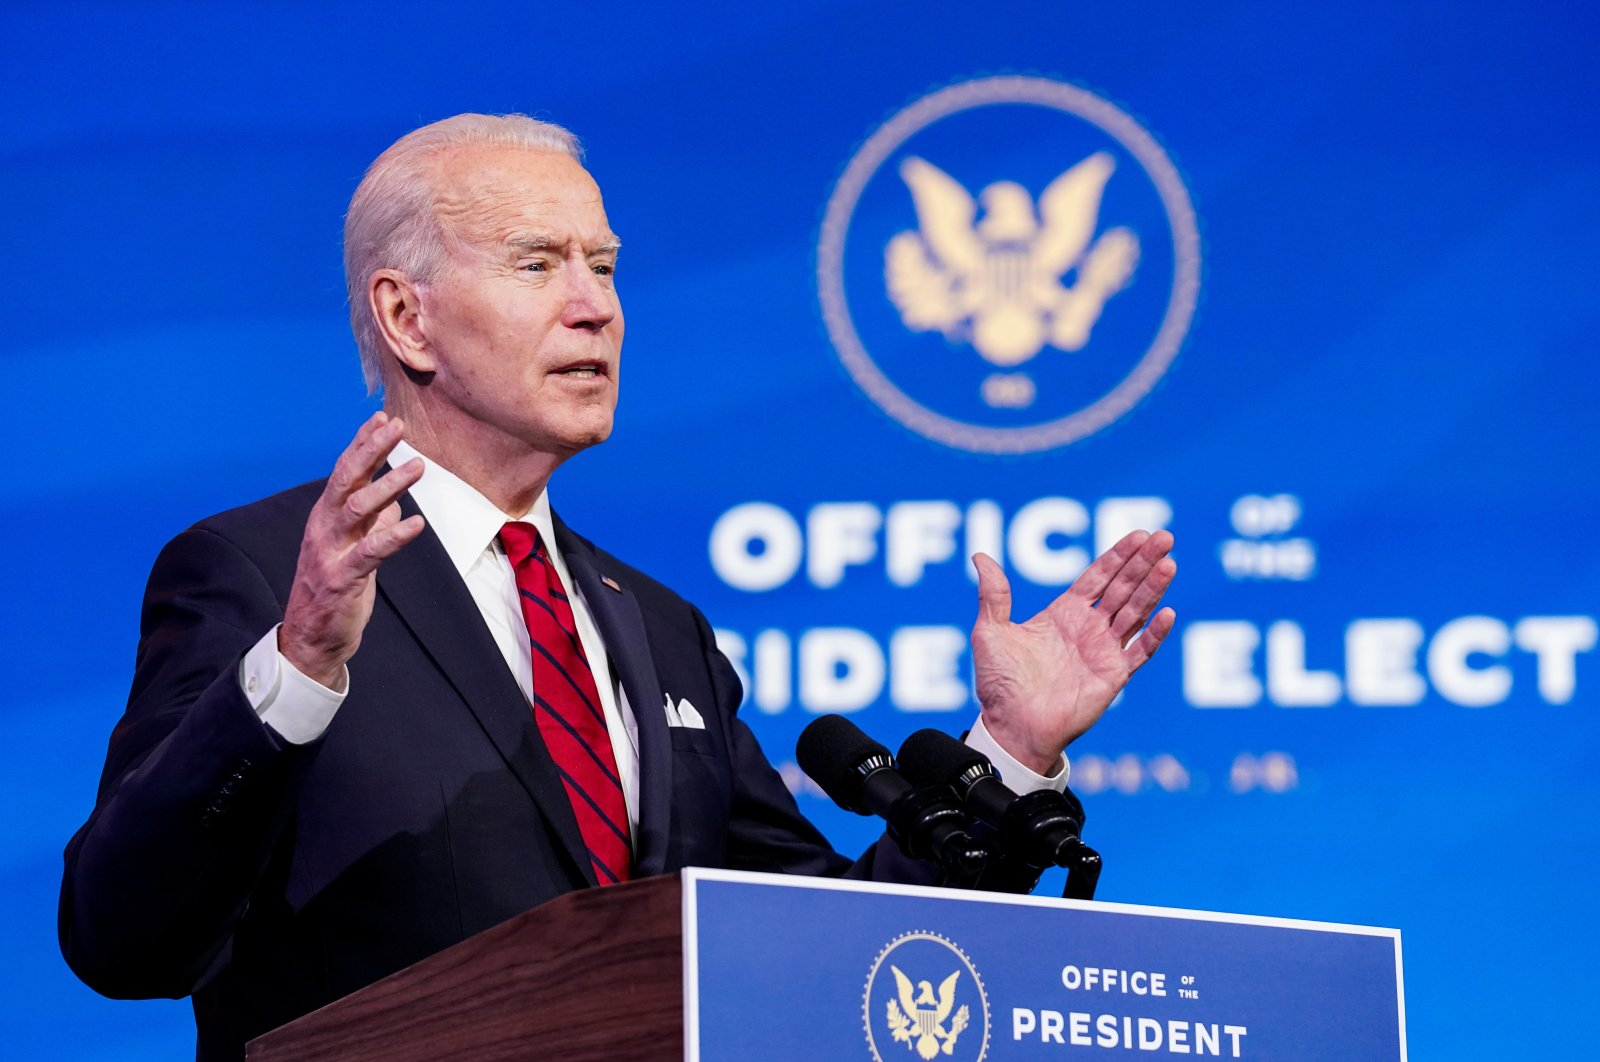 U.S. President-elect Joe Biden speaks about his plan to administer coronavirus disease vaccines to the U.S. population during a news conference at Biden's transition headquarters in Wilmington, Delaware, U.S., Jan. 15, 2021. (Reuters Photo)